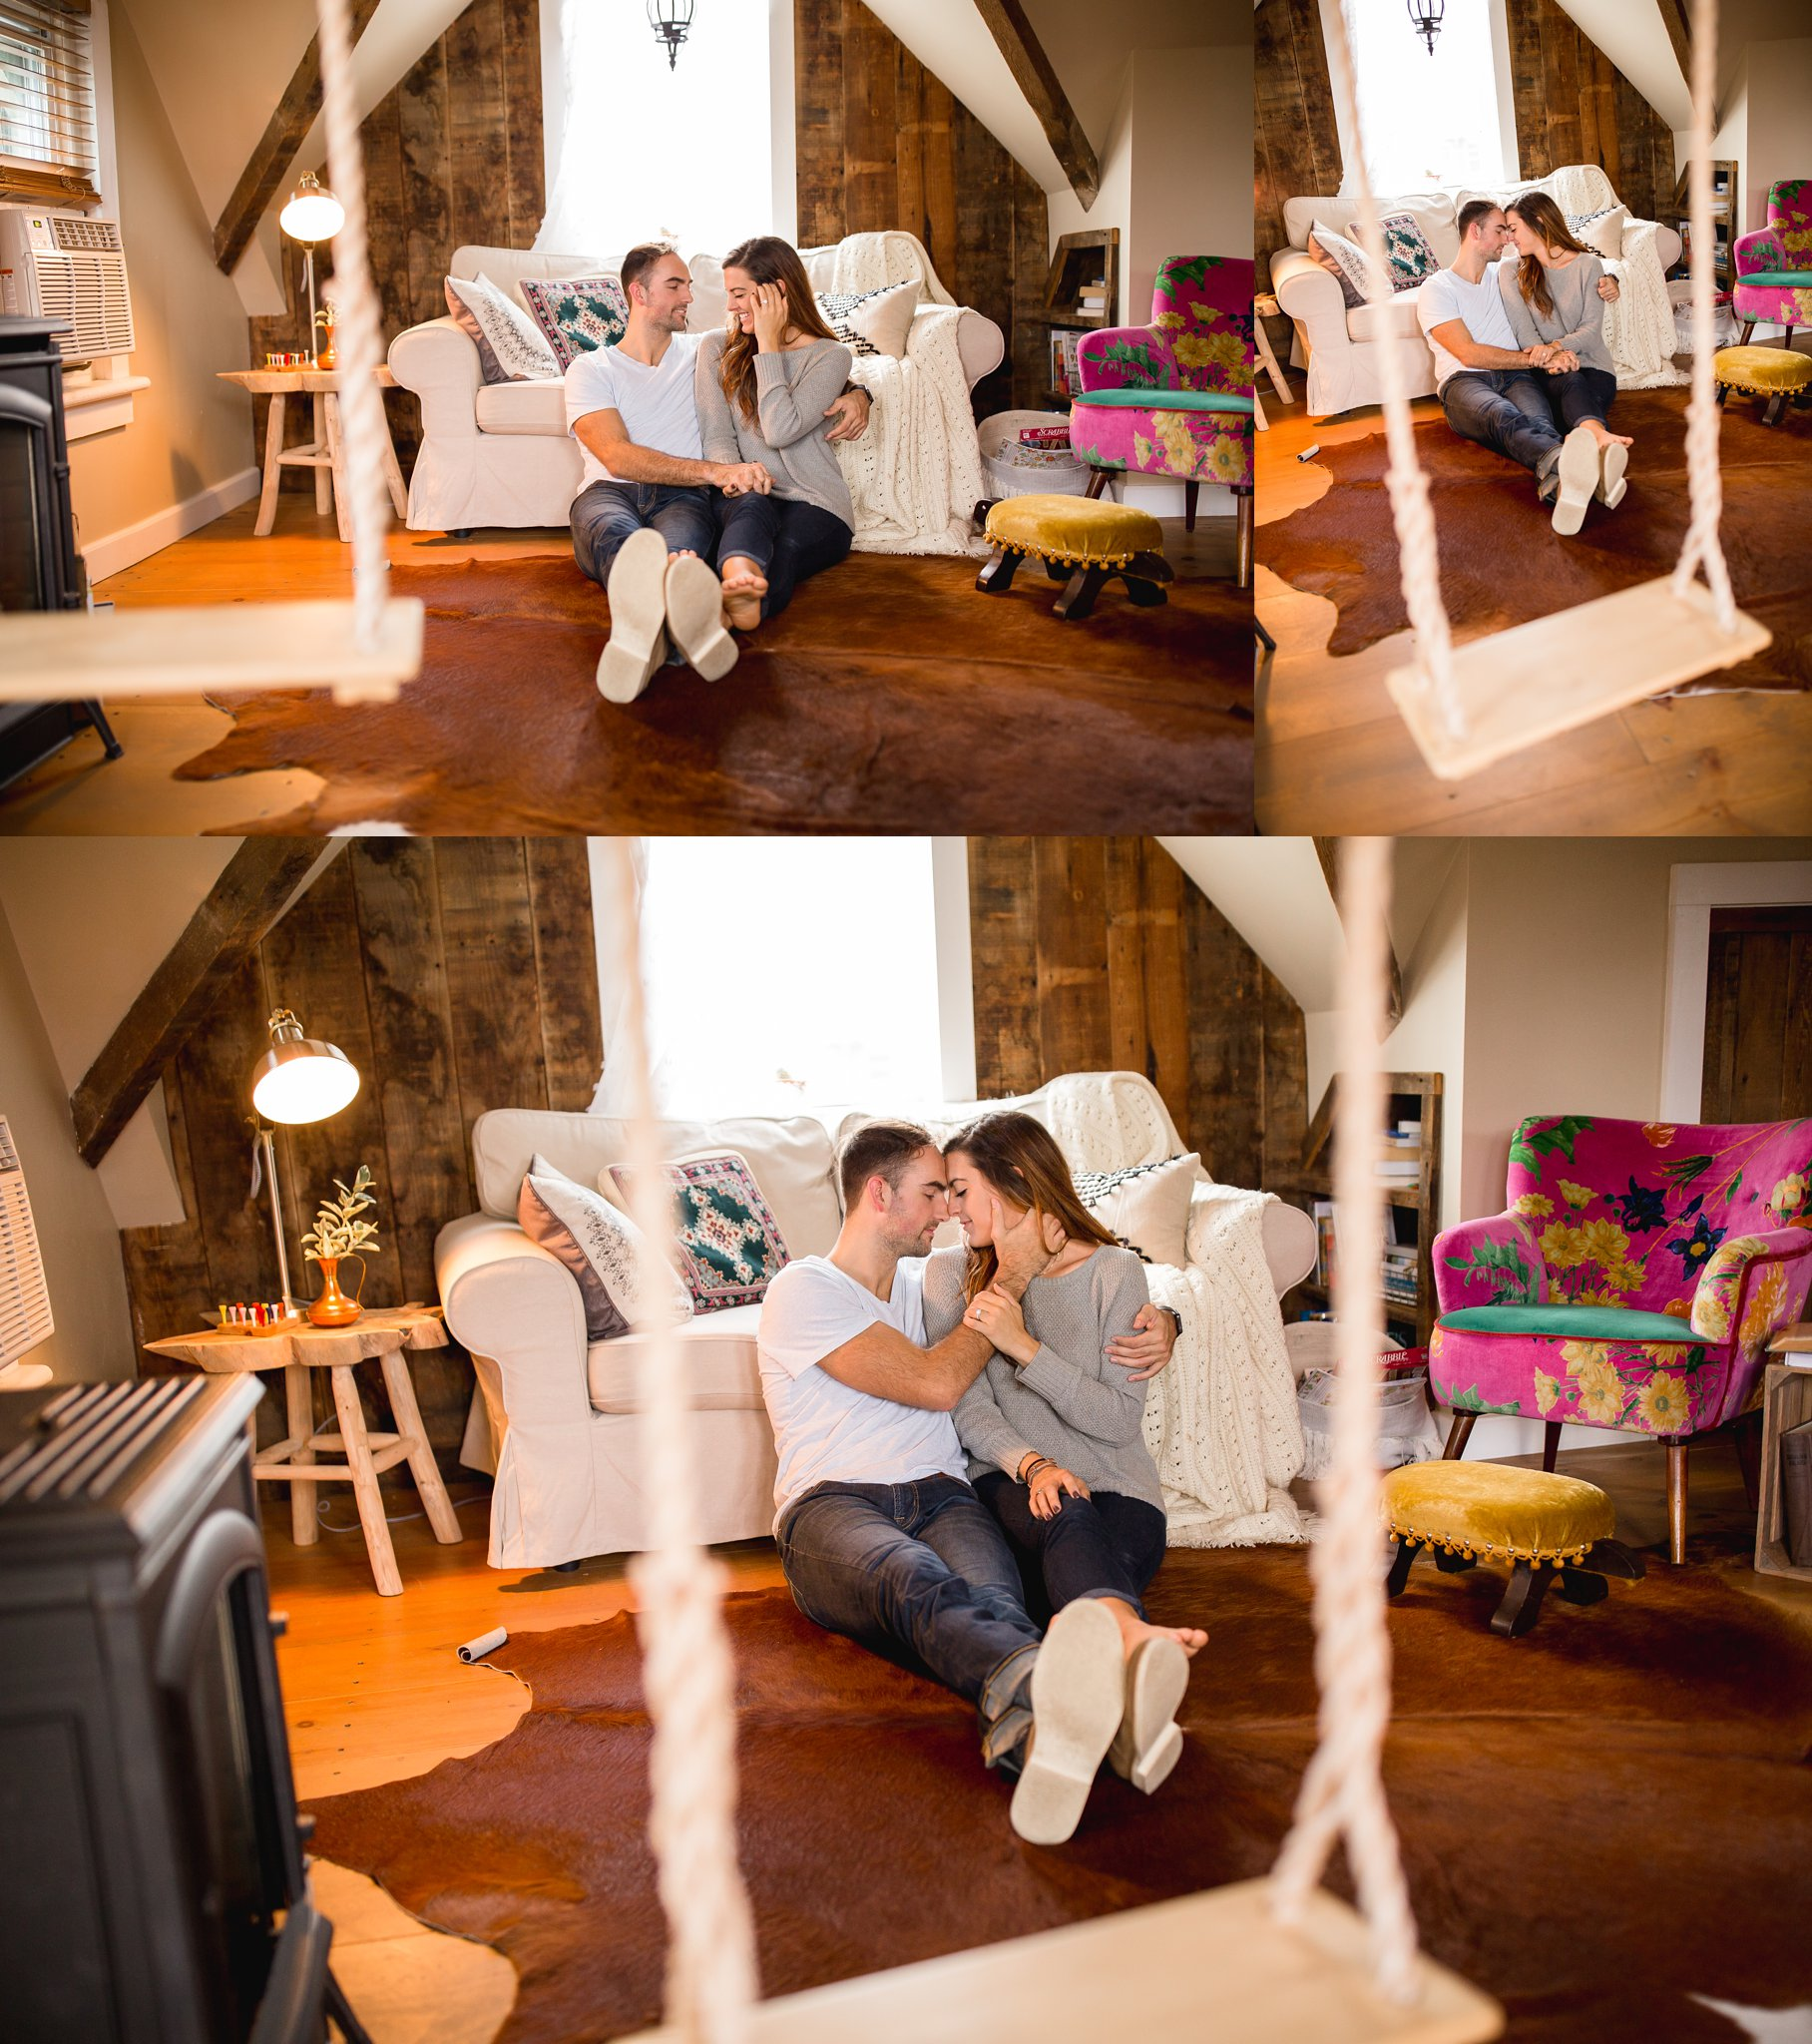 Indoor-Intimate-Engagement-Session07.jpg